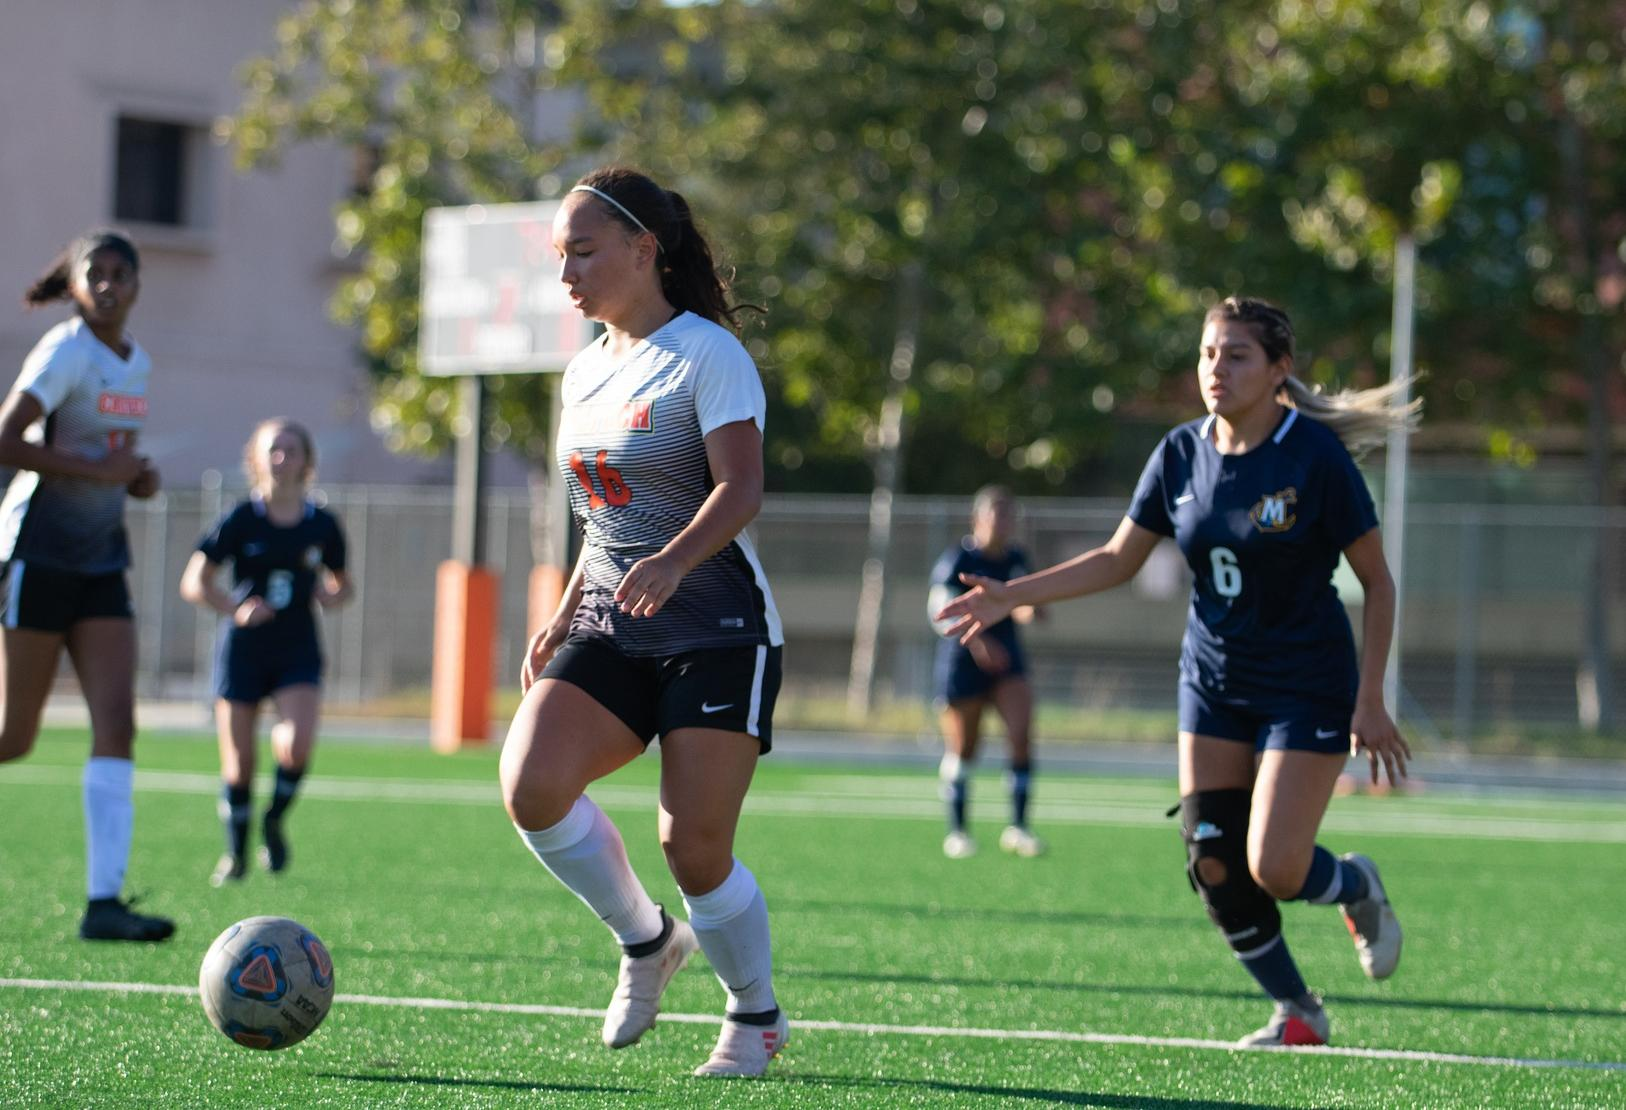 Brown, Women's Soccer Competitive at Soka